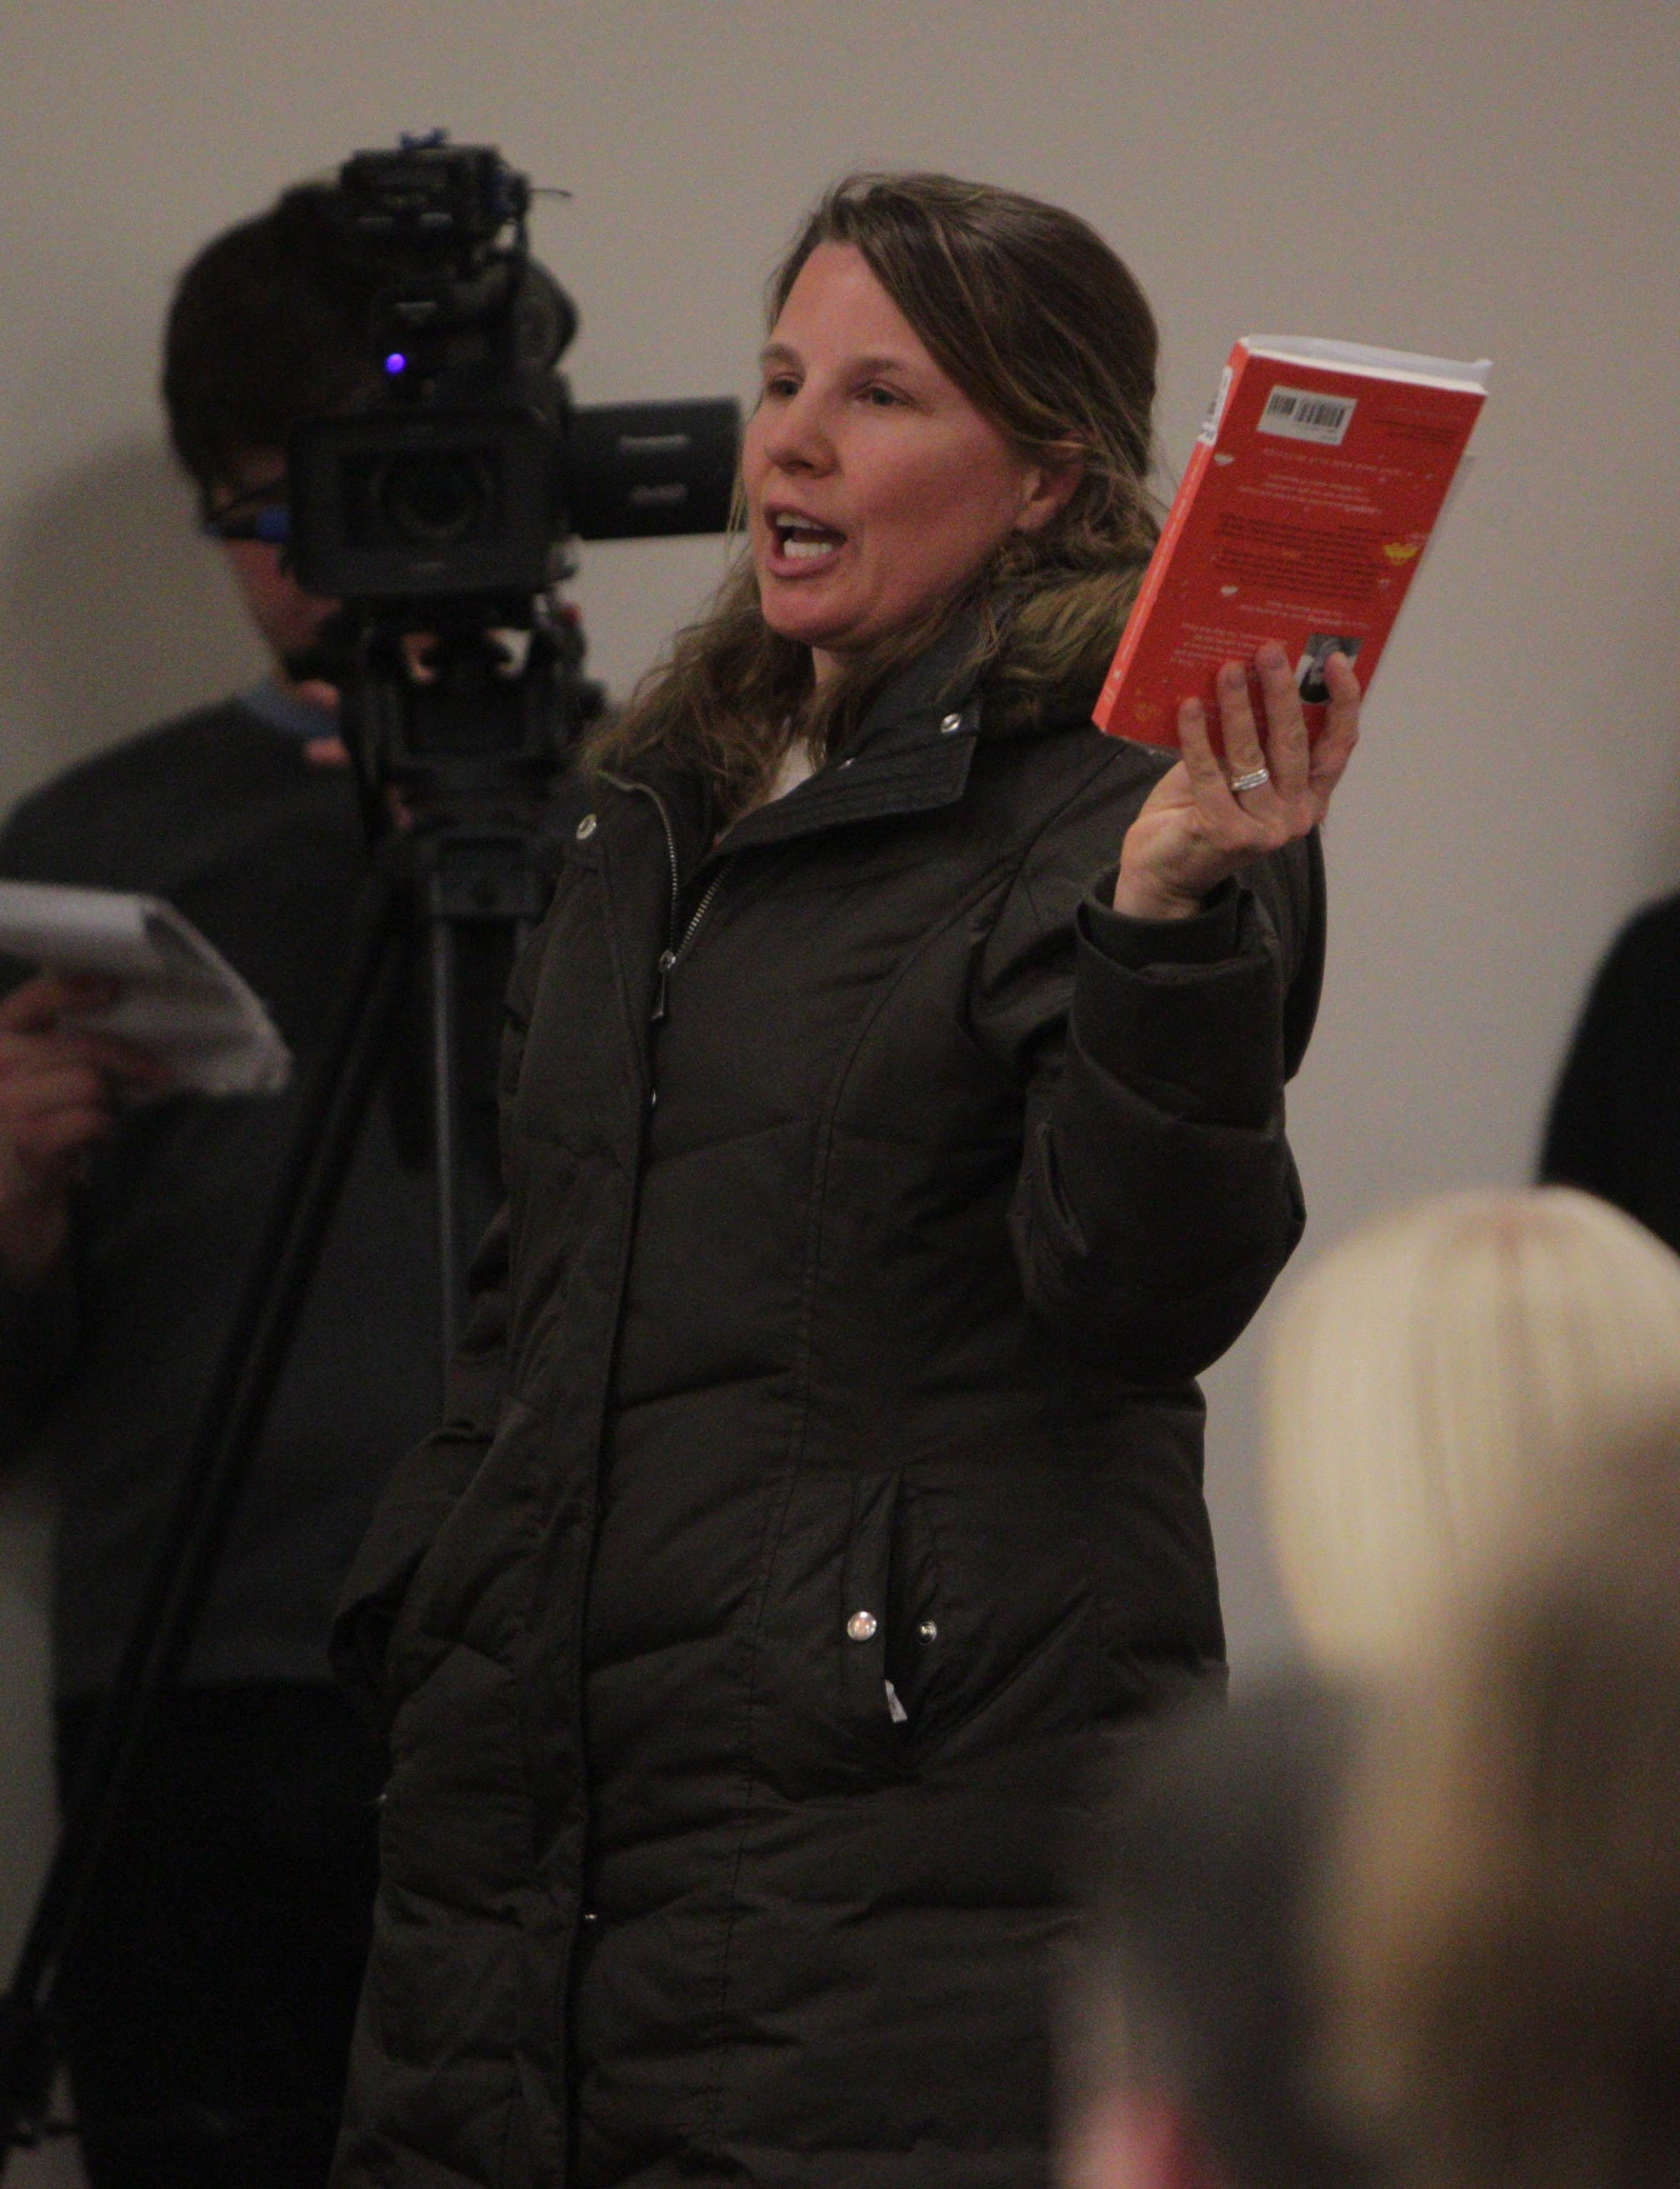 Ginger Lahti, wife of Clarence School Board member Jason Lahti, speaks at Monday's school board meeting, expressing her dissatisfaction with school district policy that a child is sent to the school library when a book parents find objectionable is being discussed in class. (Sharon Cantillon/Buffalo News)